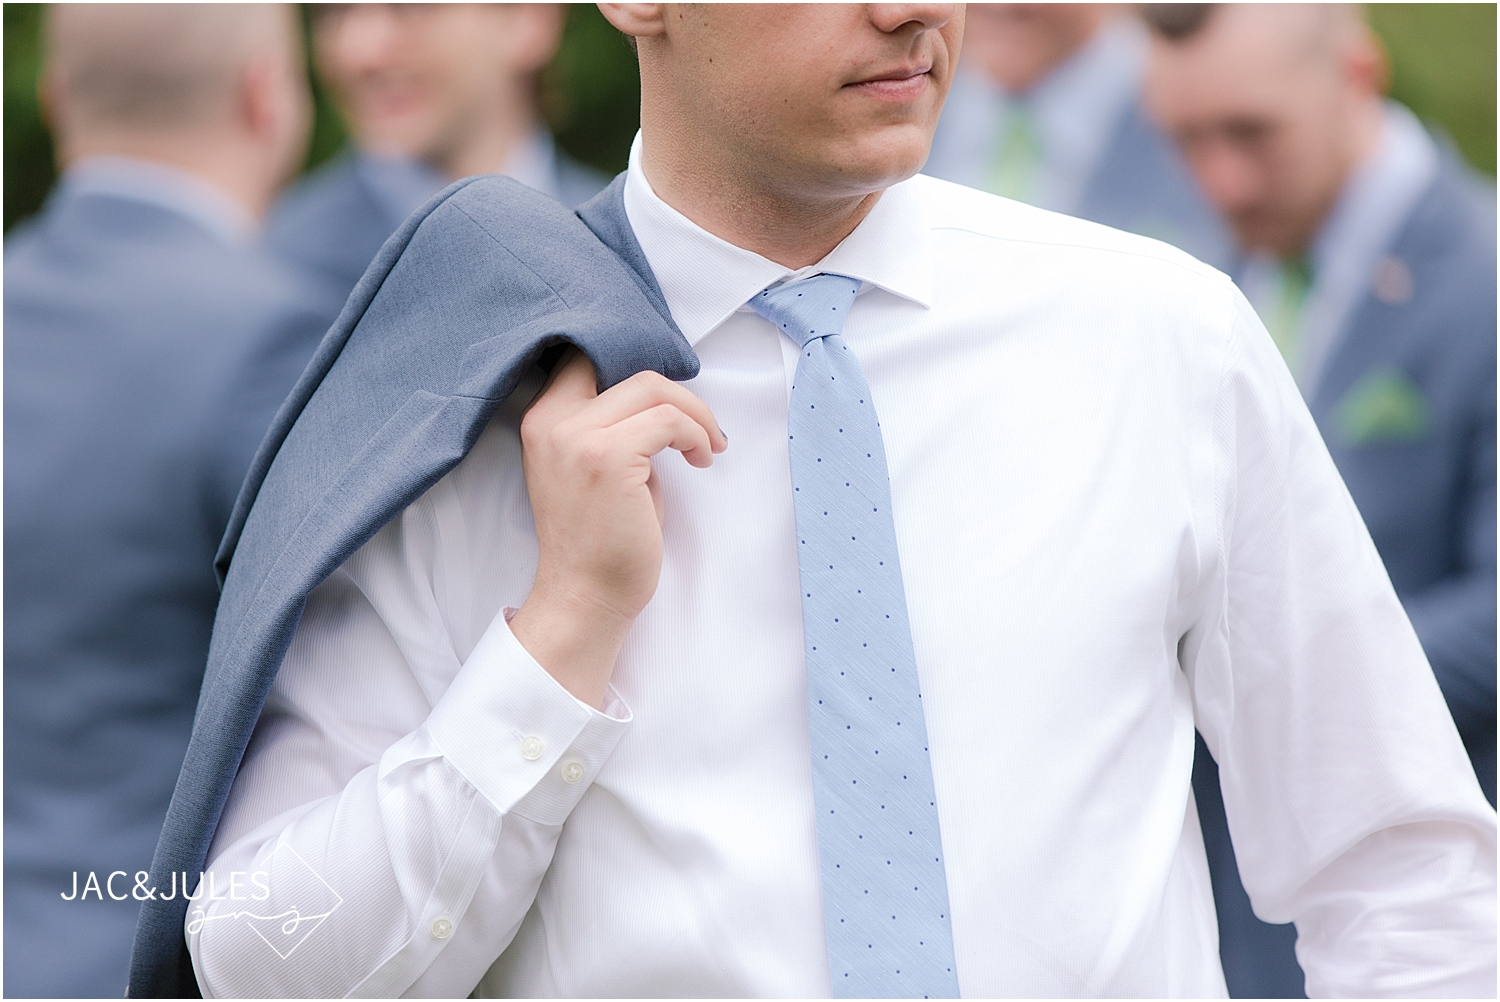 jacnjules photographs groom in his blue suit from The Tie Bar